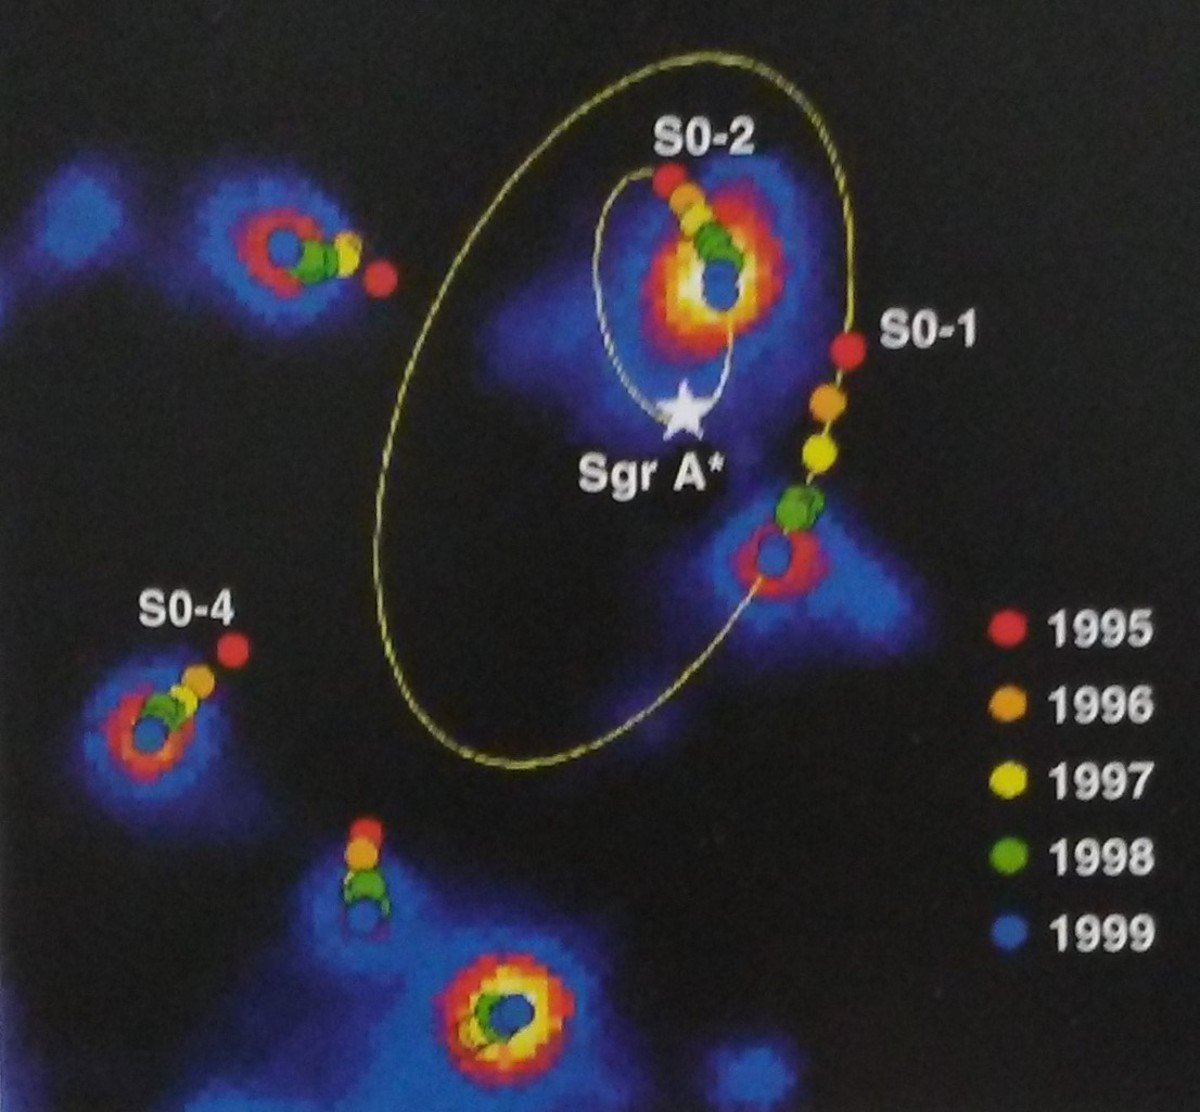 Motions of stars around A* as captured by Keck.